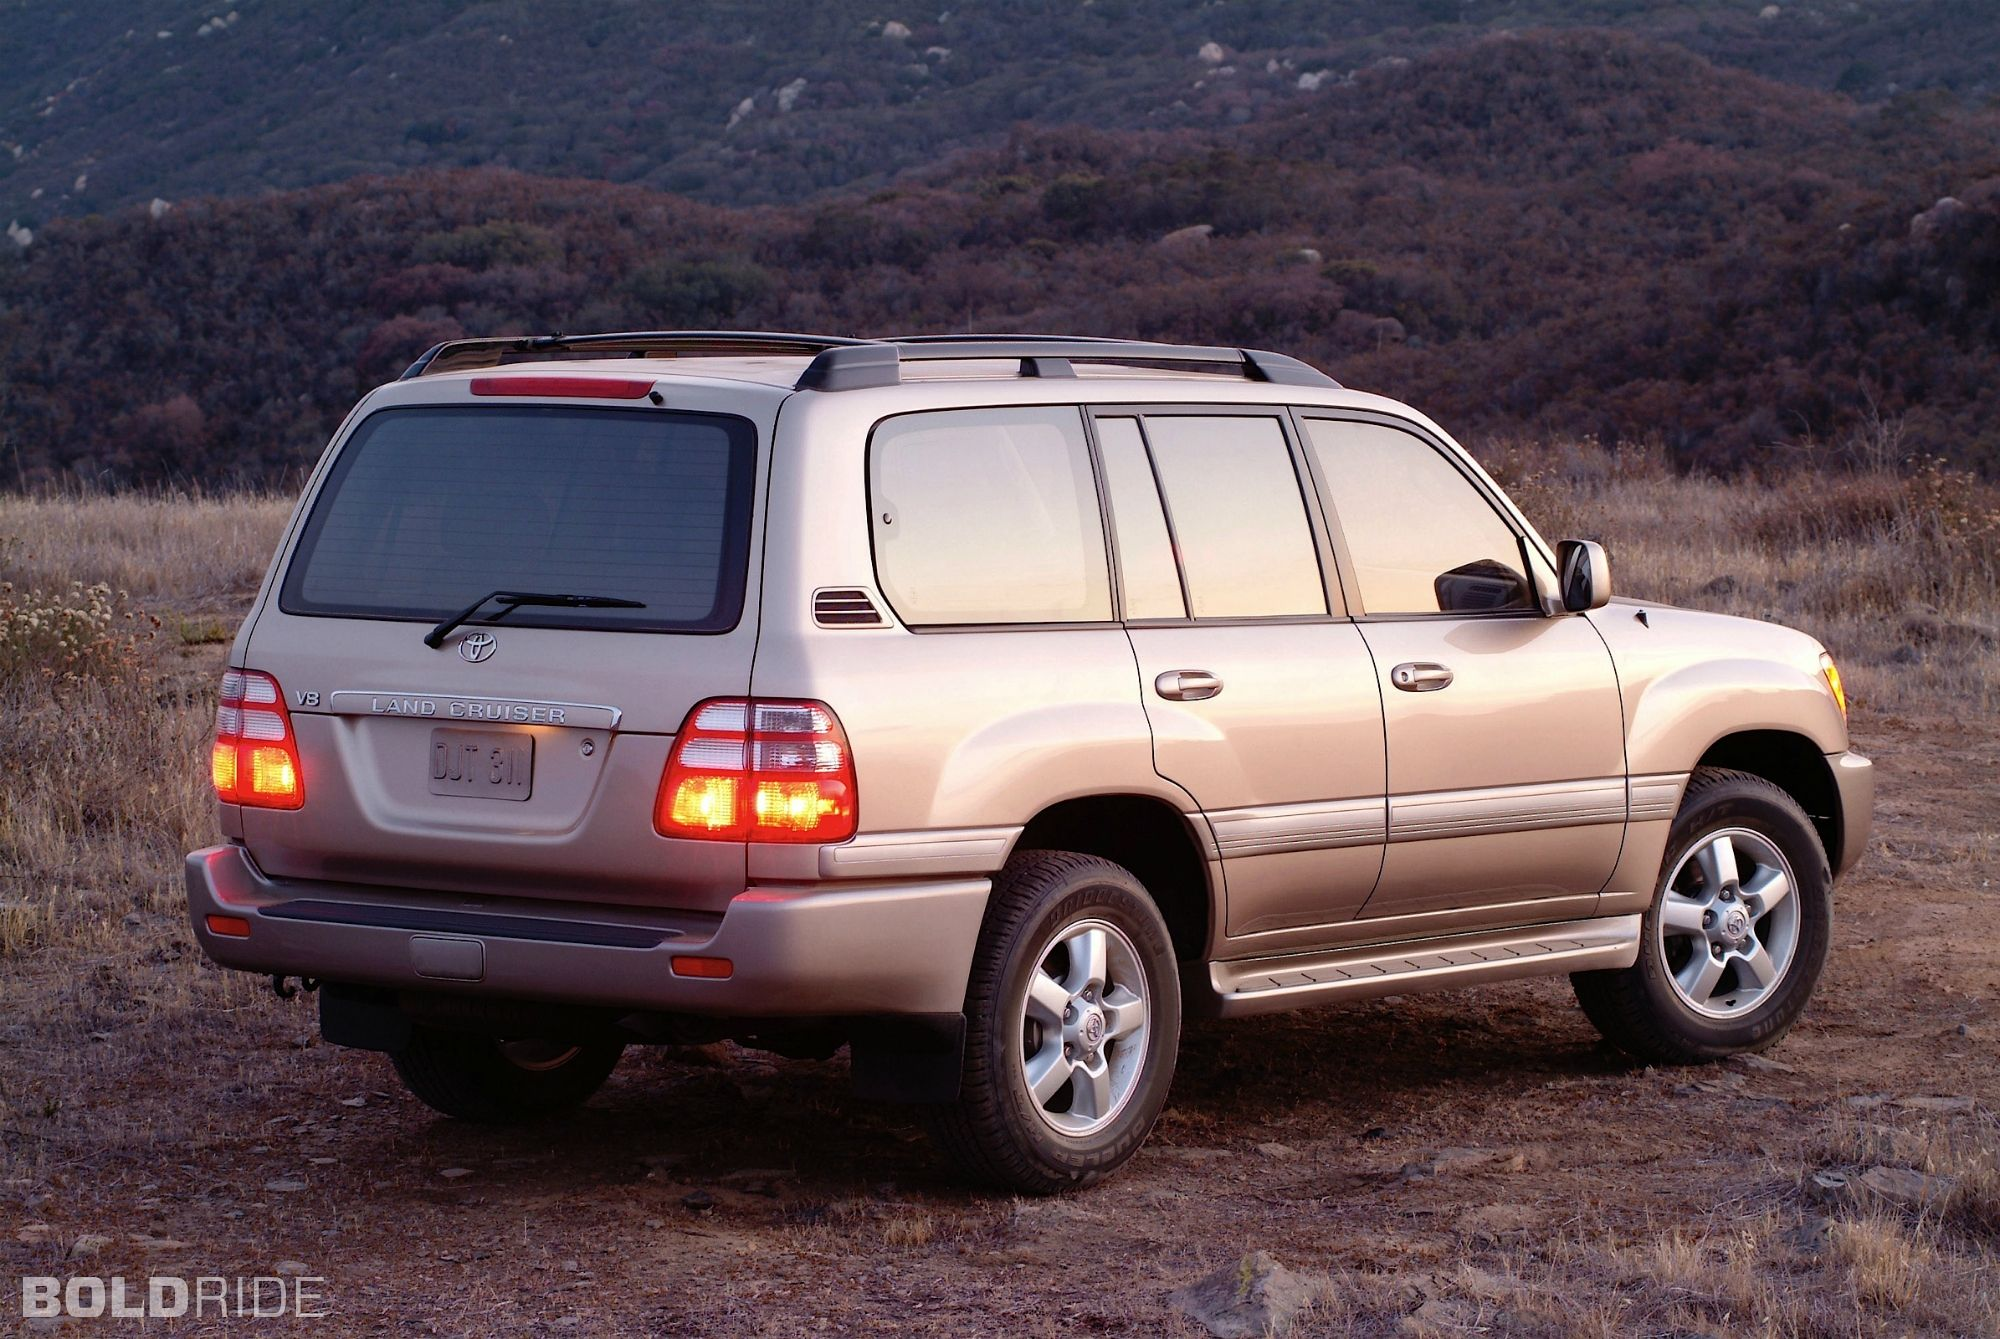 Older Toyota Land Cruiser